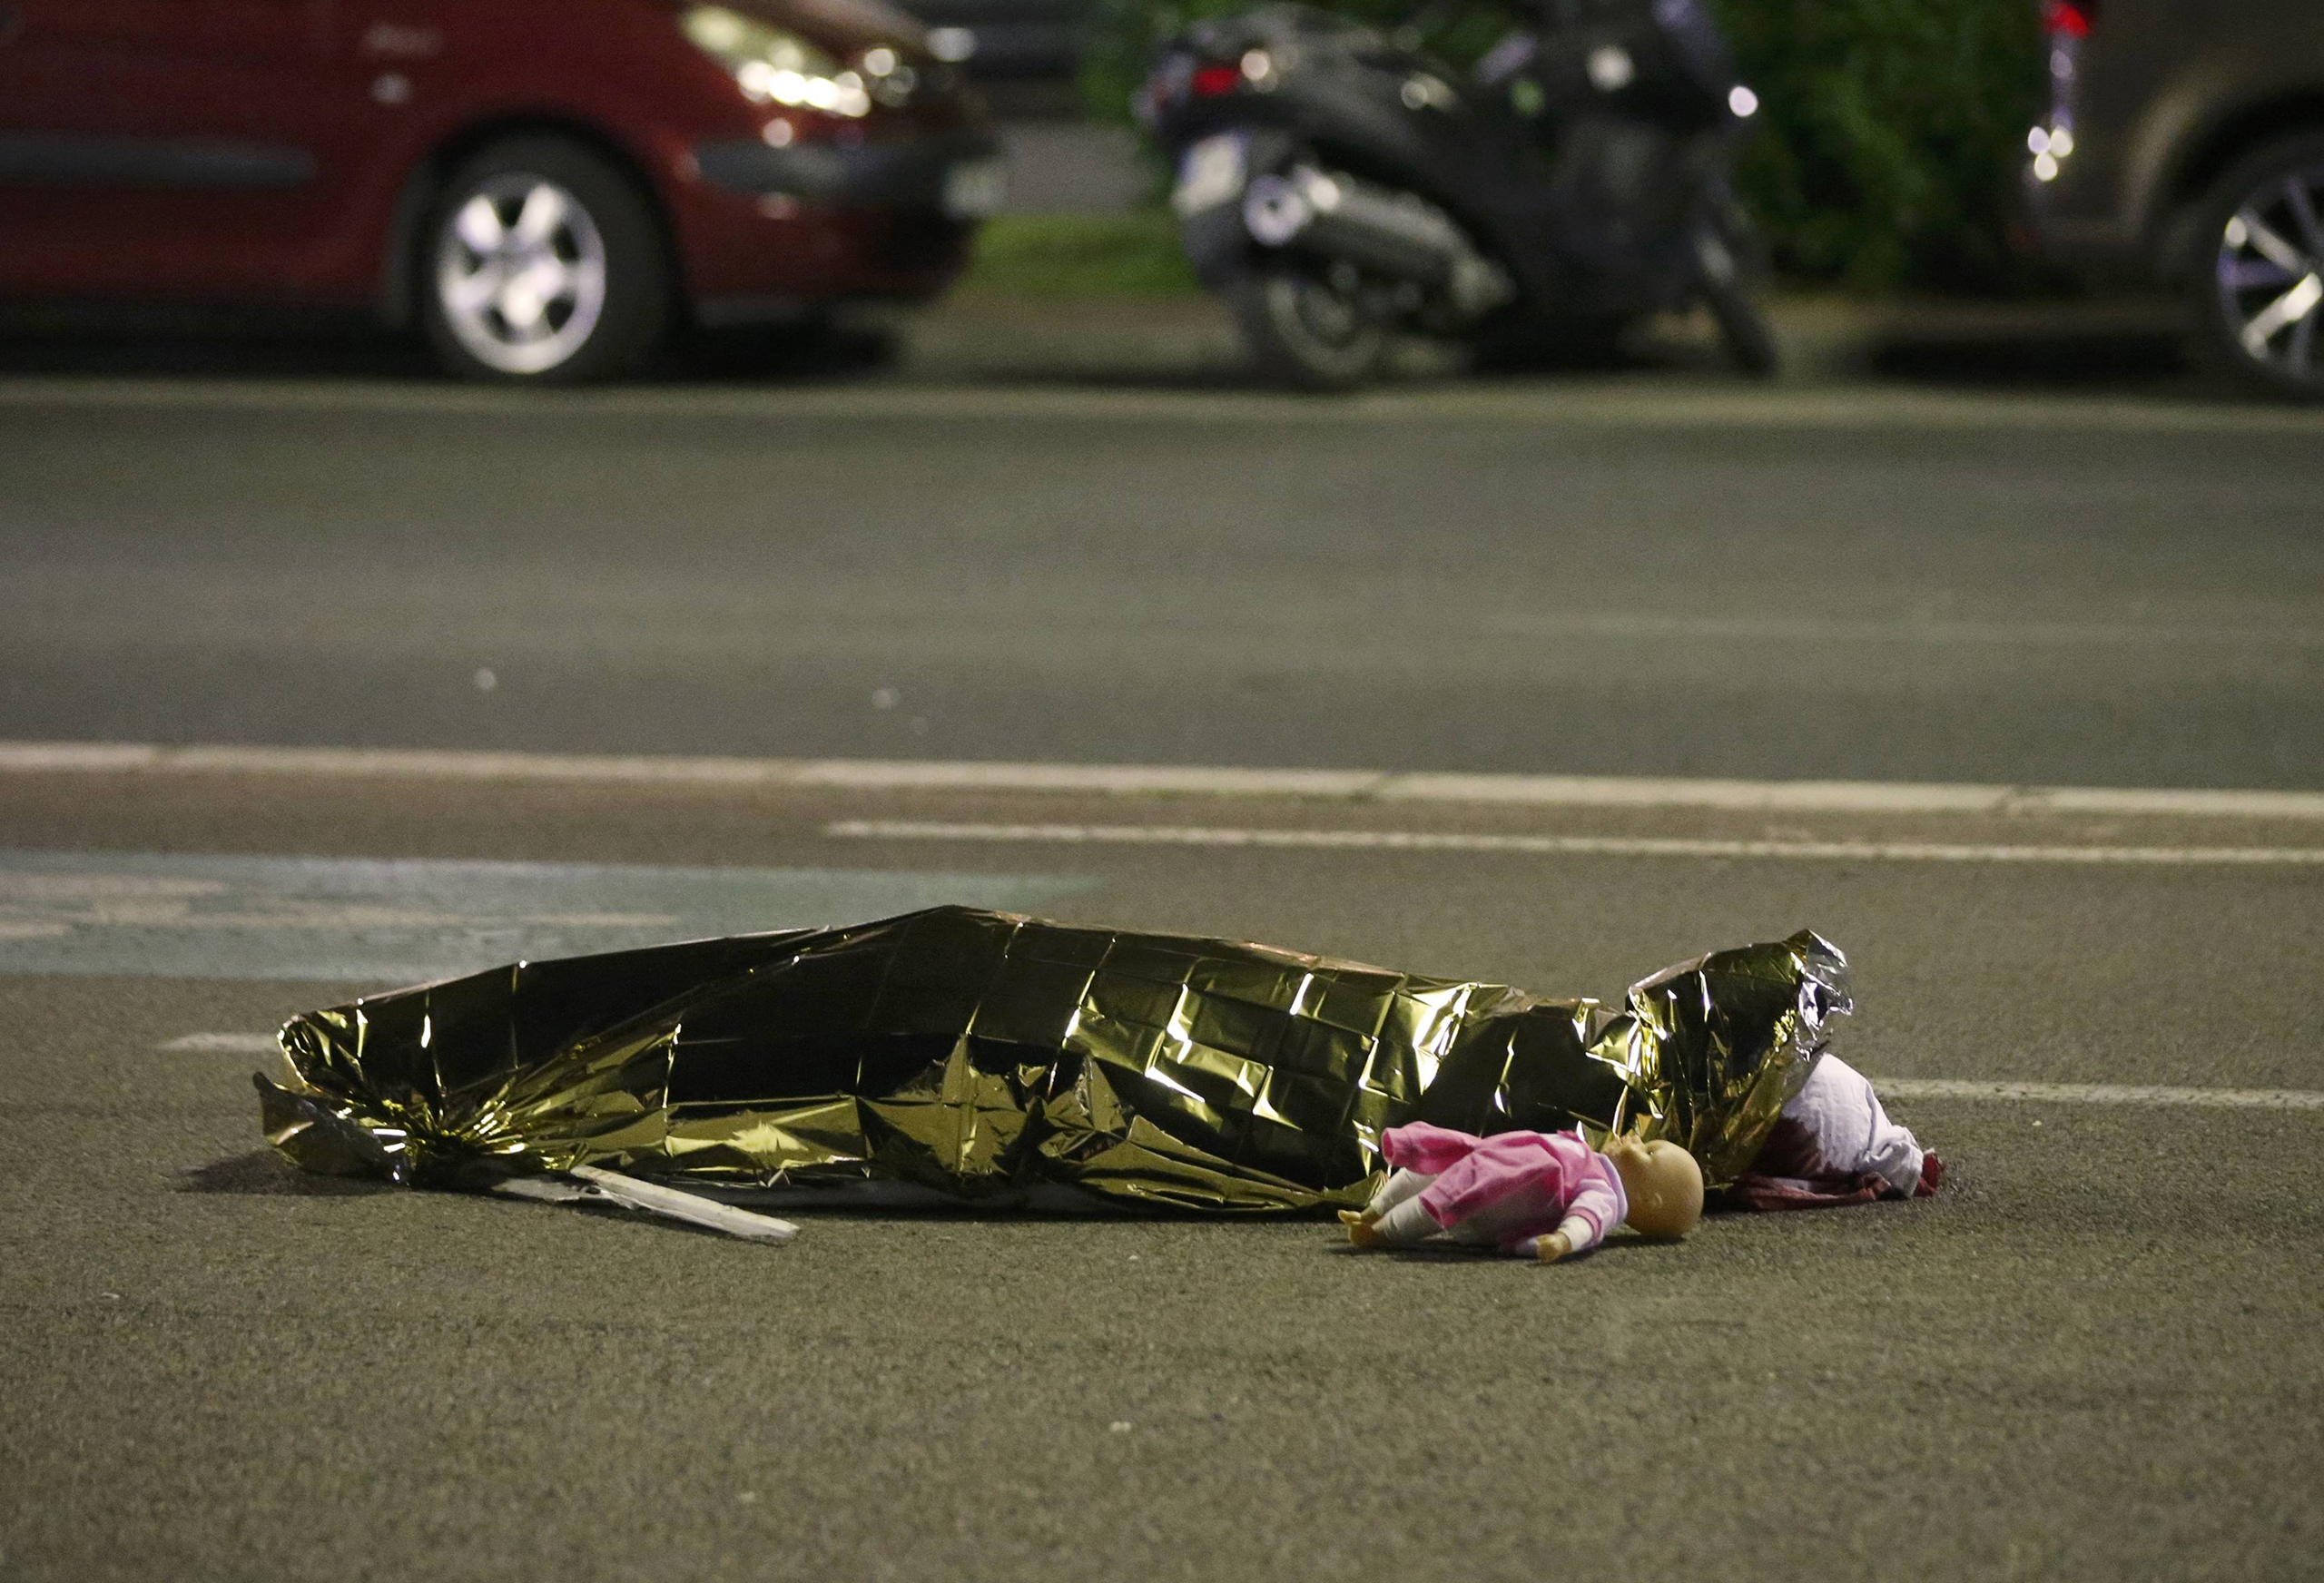 A body is seen on the ground on July 15, 2016, after at least 70 people were killed in Nice, France, when a truck ran into a crowd celebrating Bastille Day.